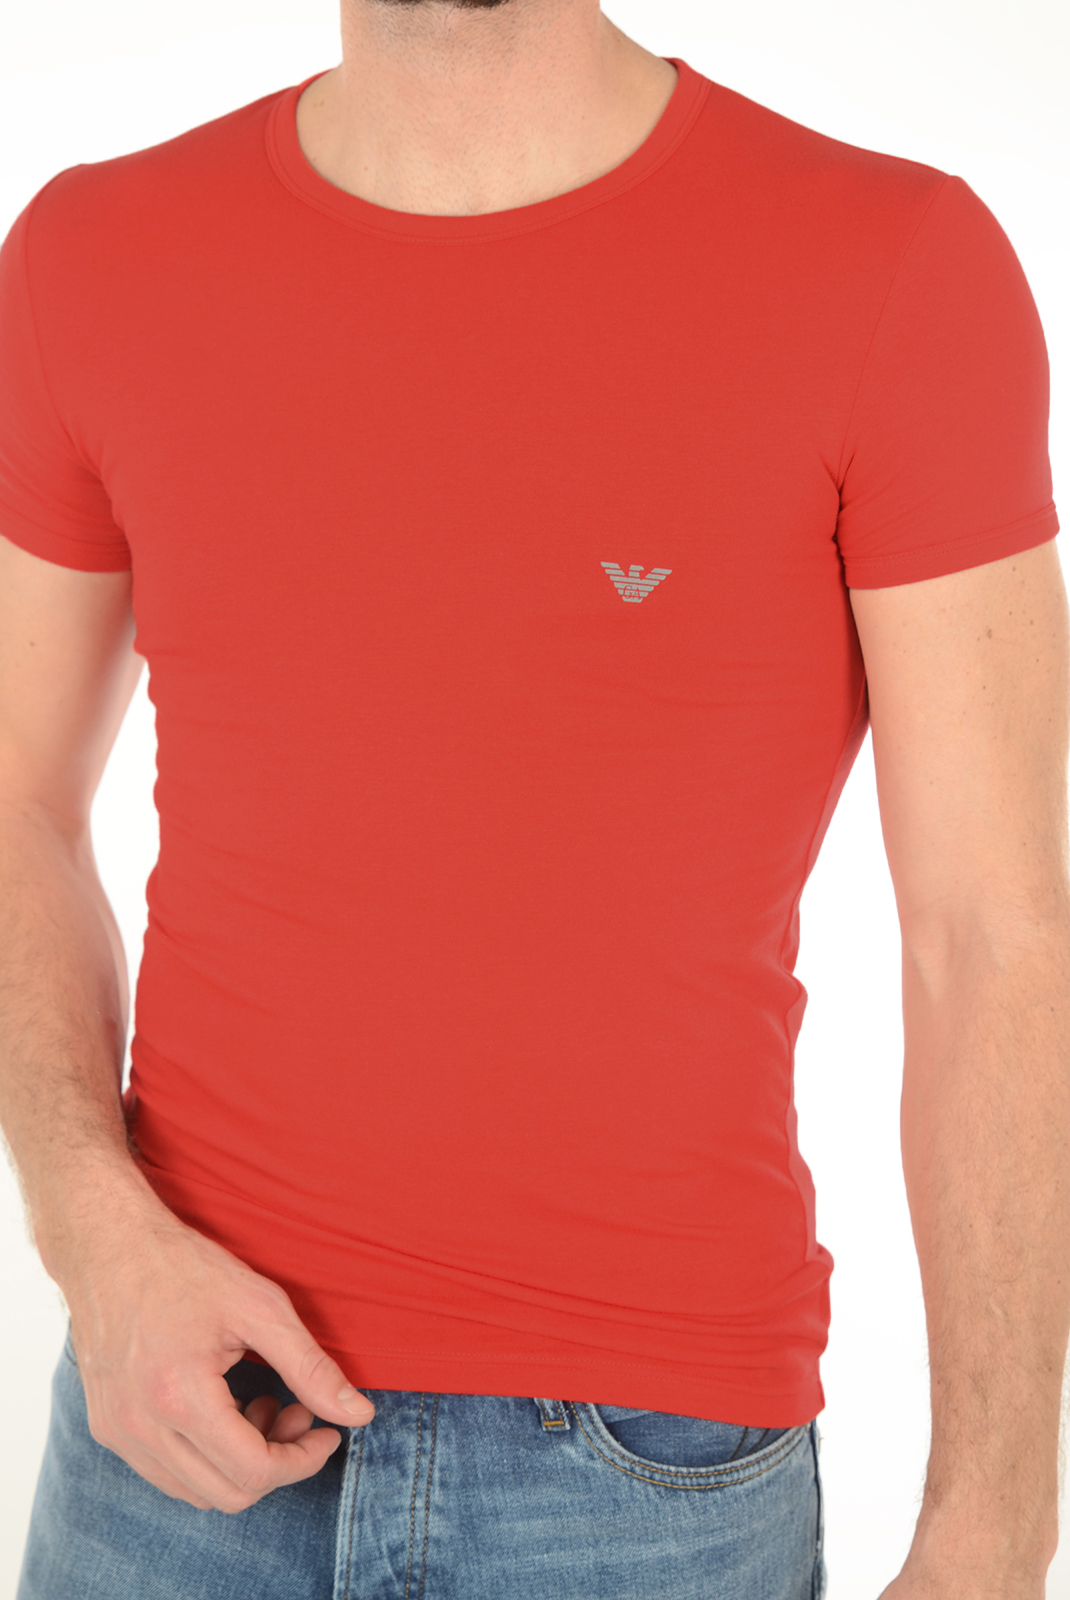 T-S manches courtes  Emporio armani 111035 6A725 074 ROUGE